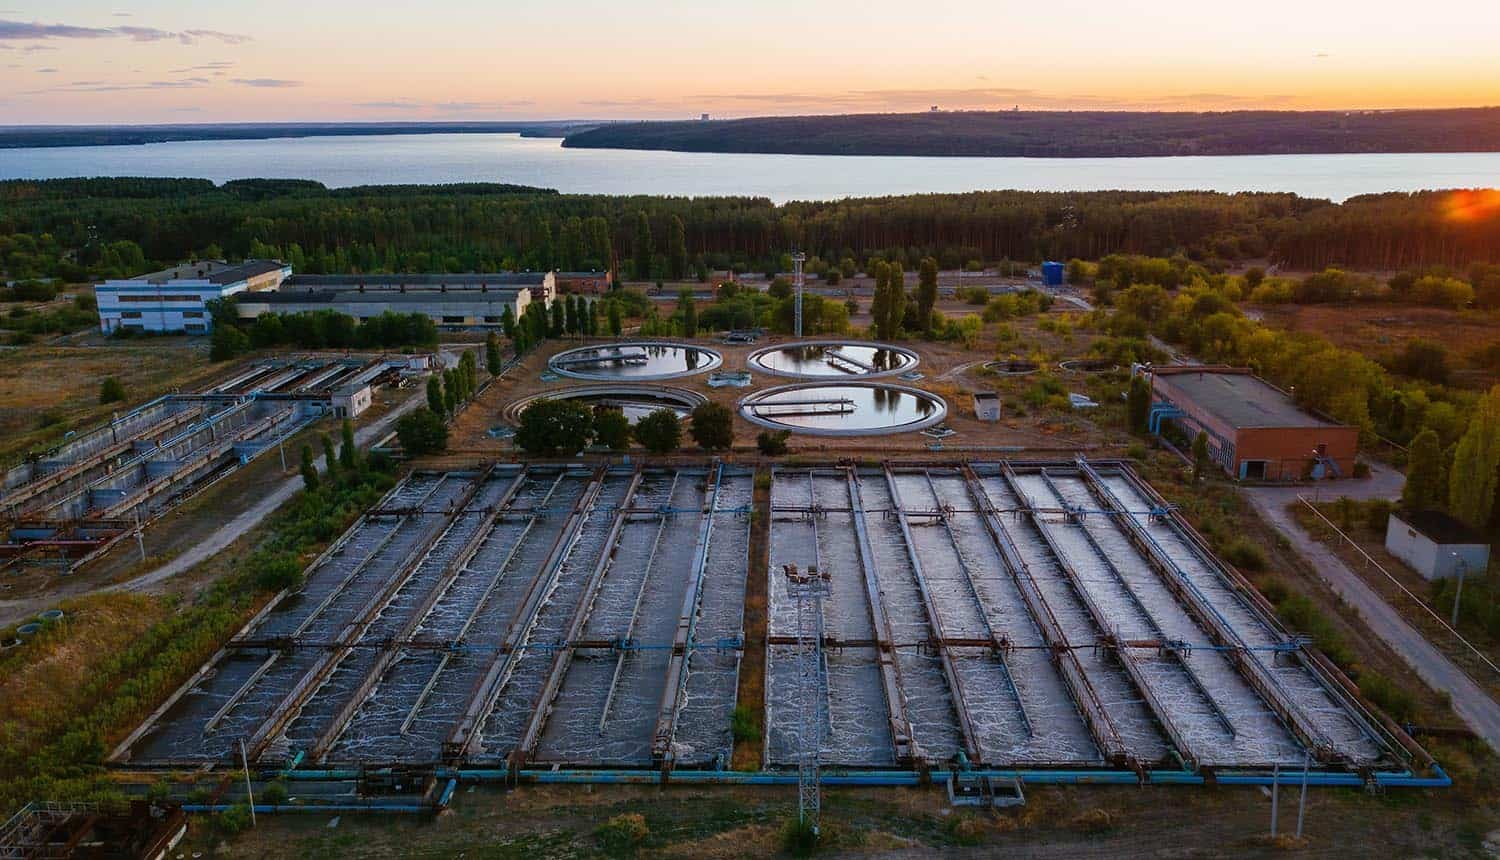 Modern wastewater treatment plant, aerial view at the evening sunset showing cybersecurity advisory on cyber threats on water facilities